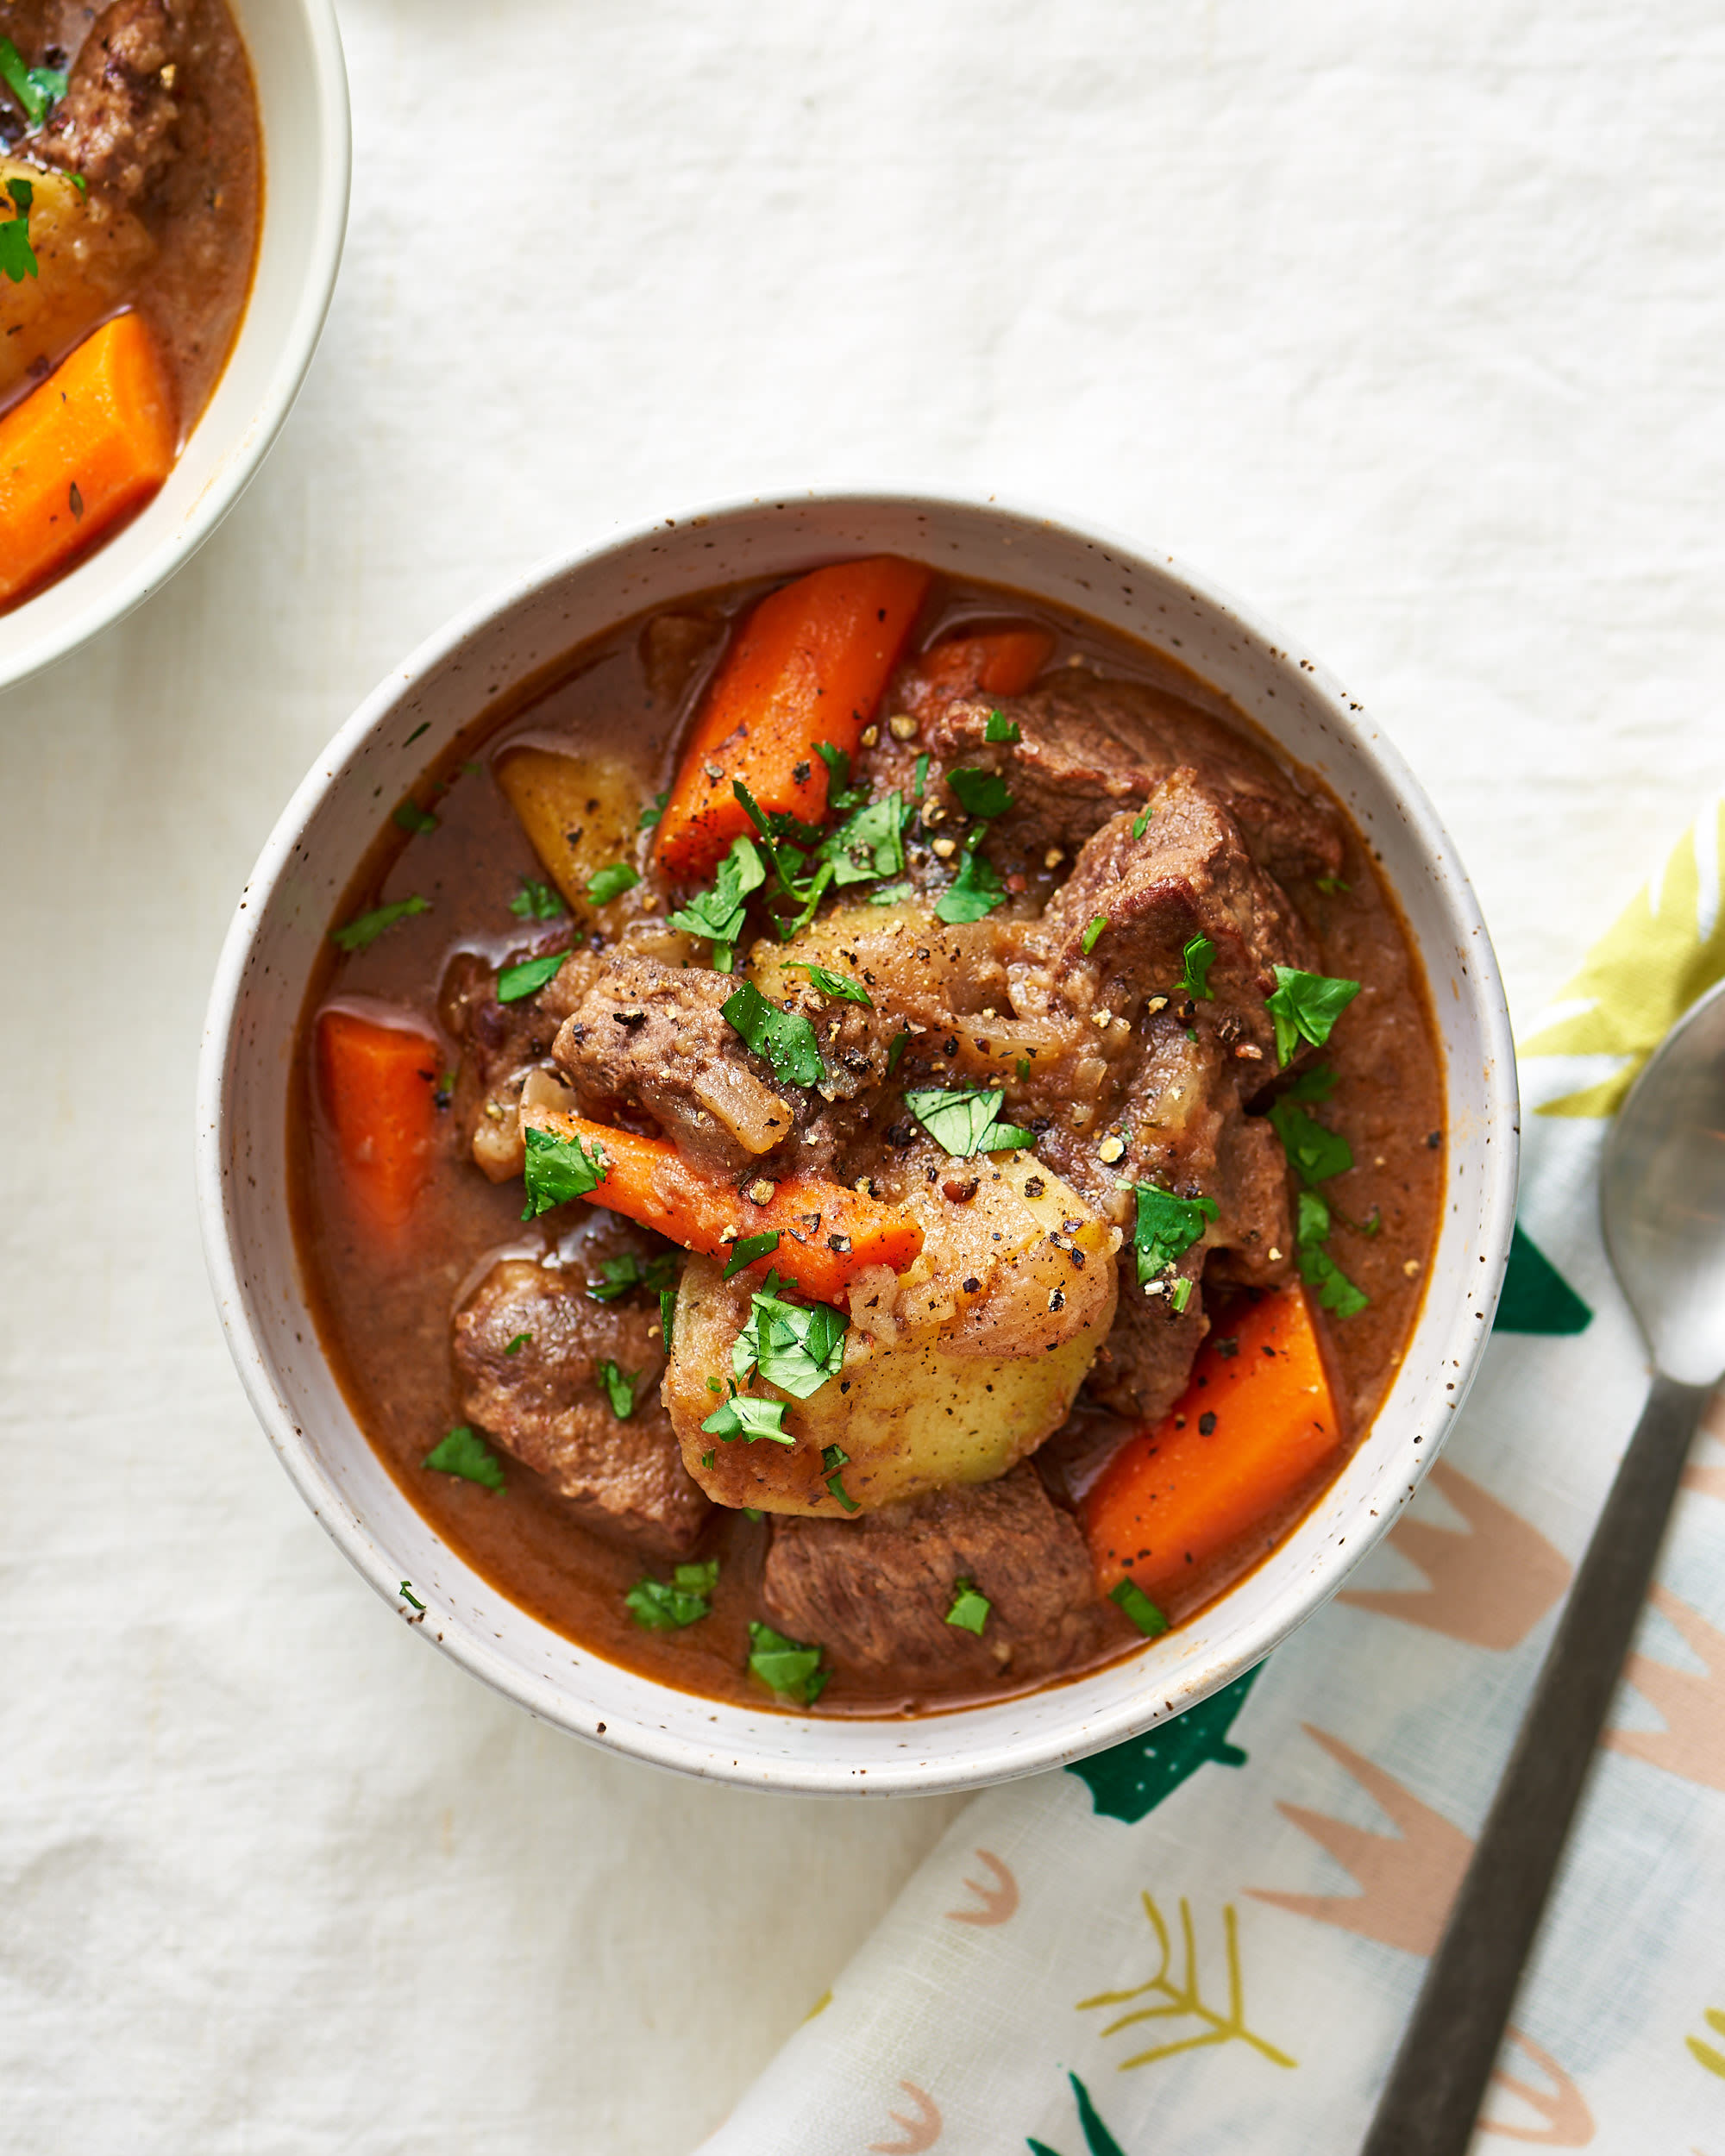 How To Make Beef Stew In The Slow Cooker Kitchn